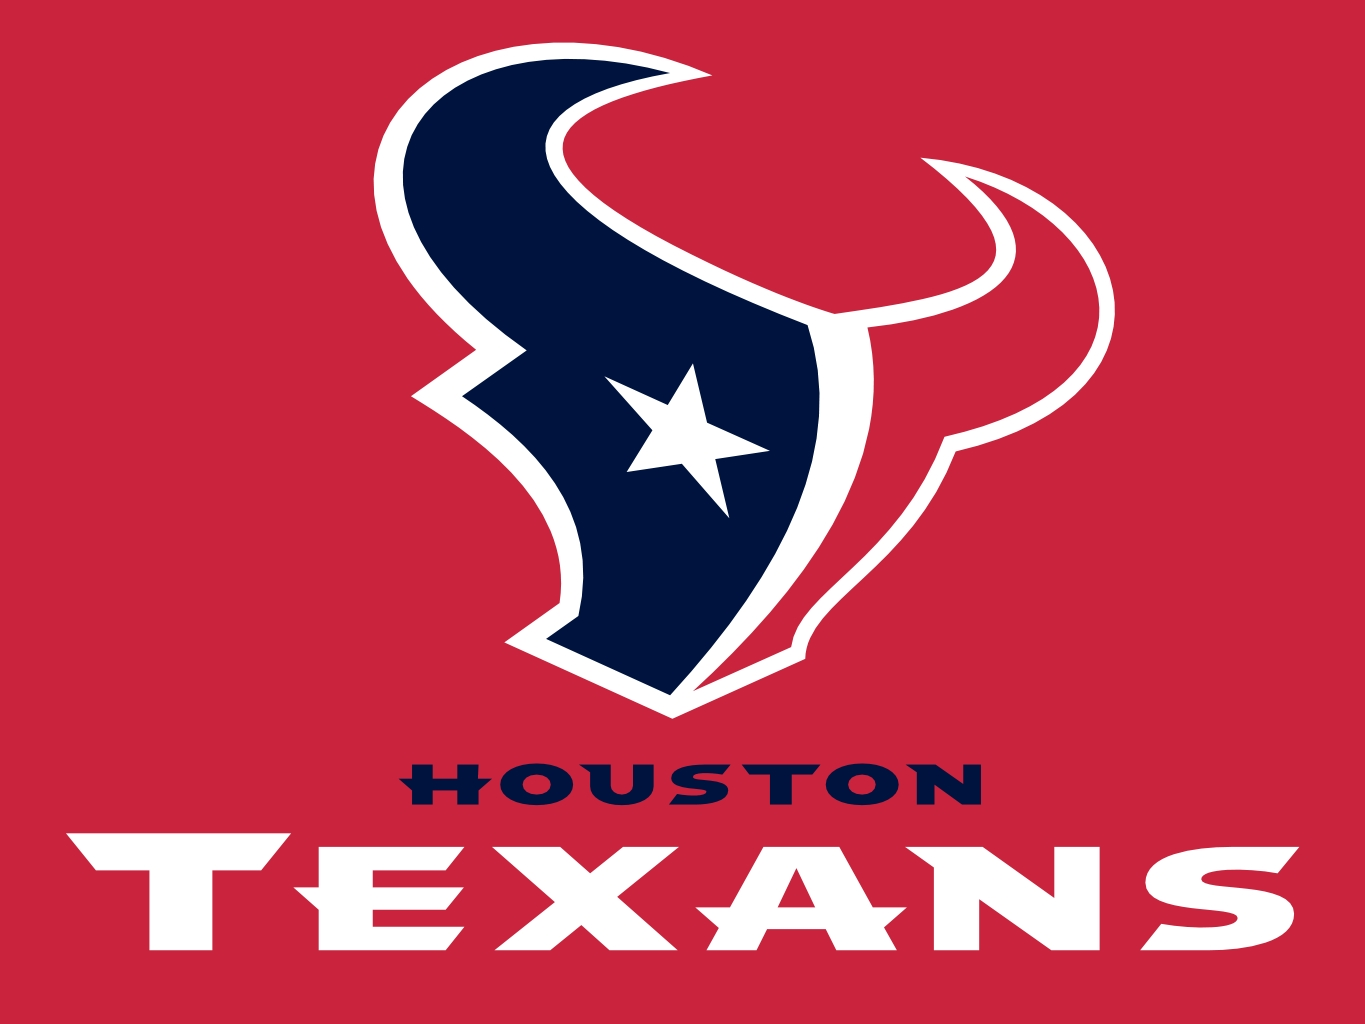 Houston Texans Logo Clipart.